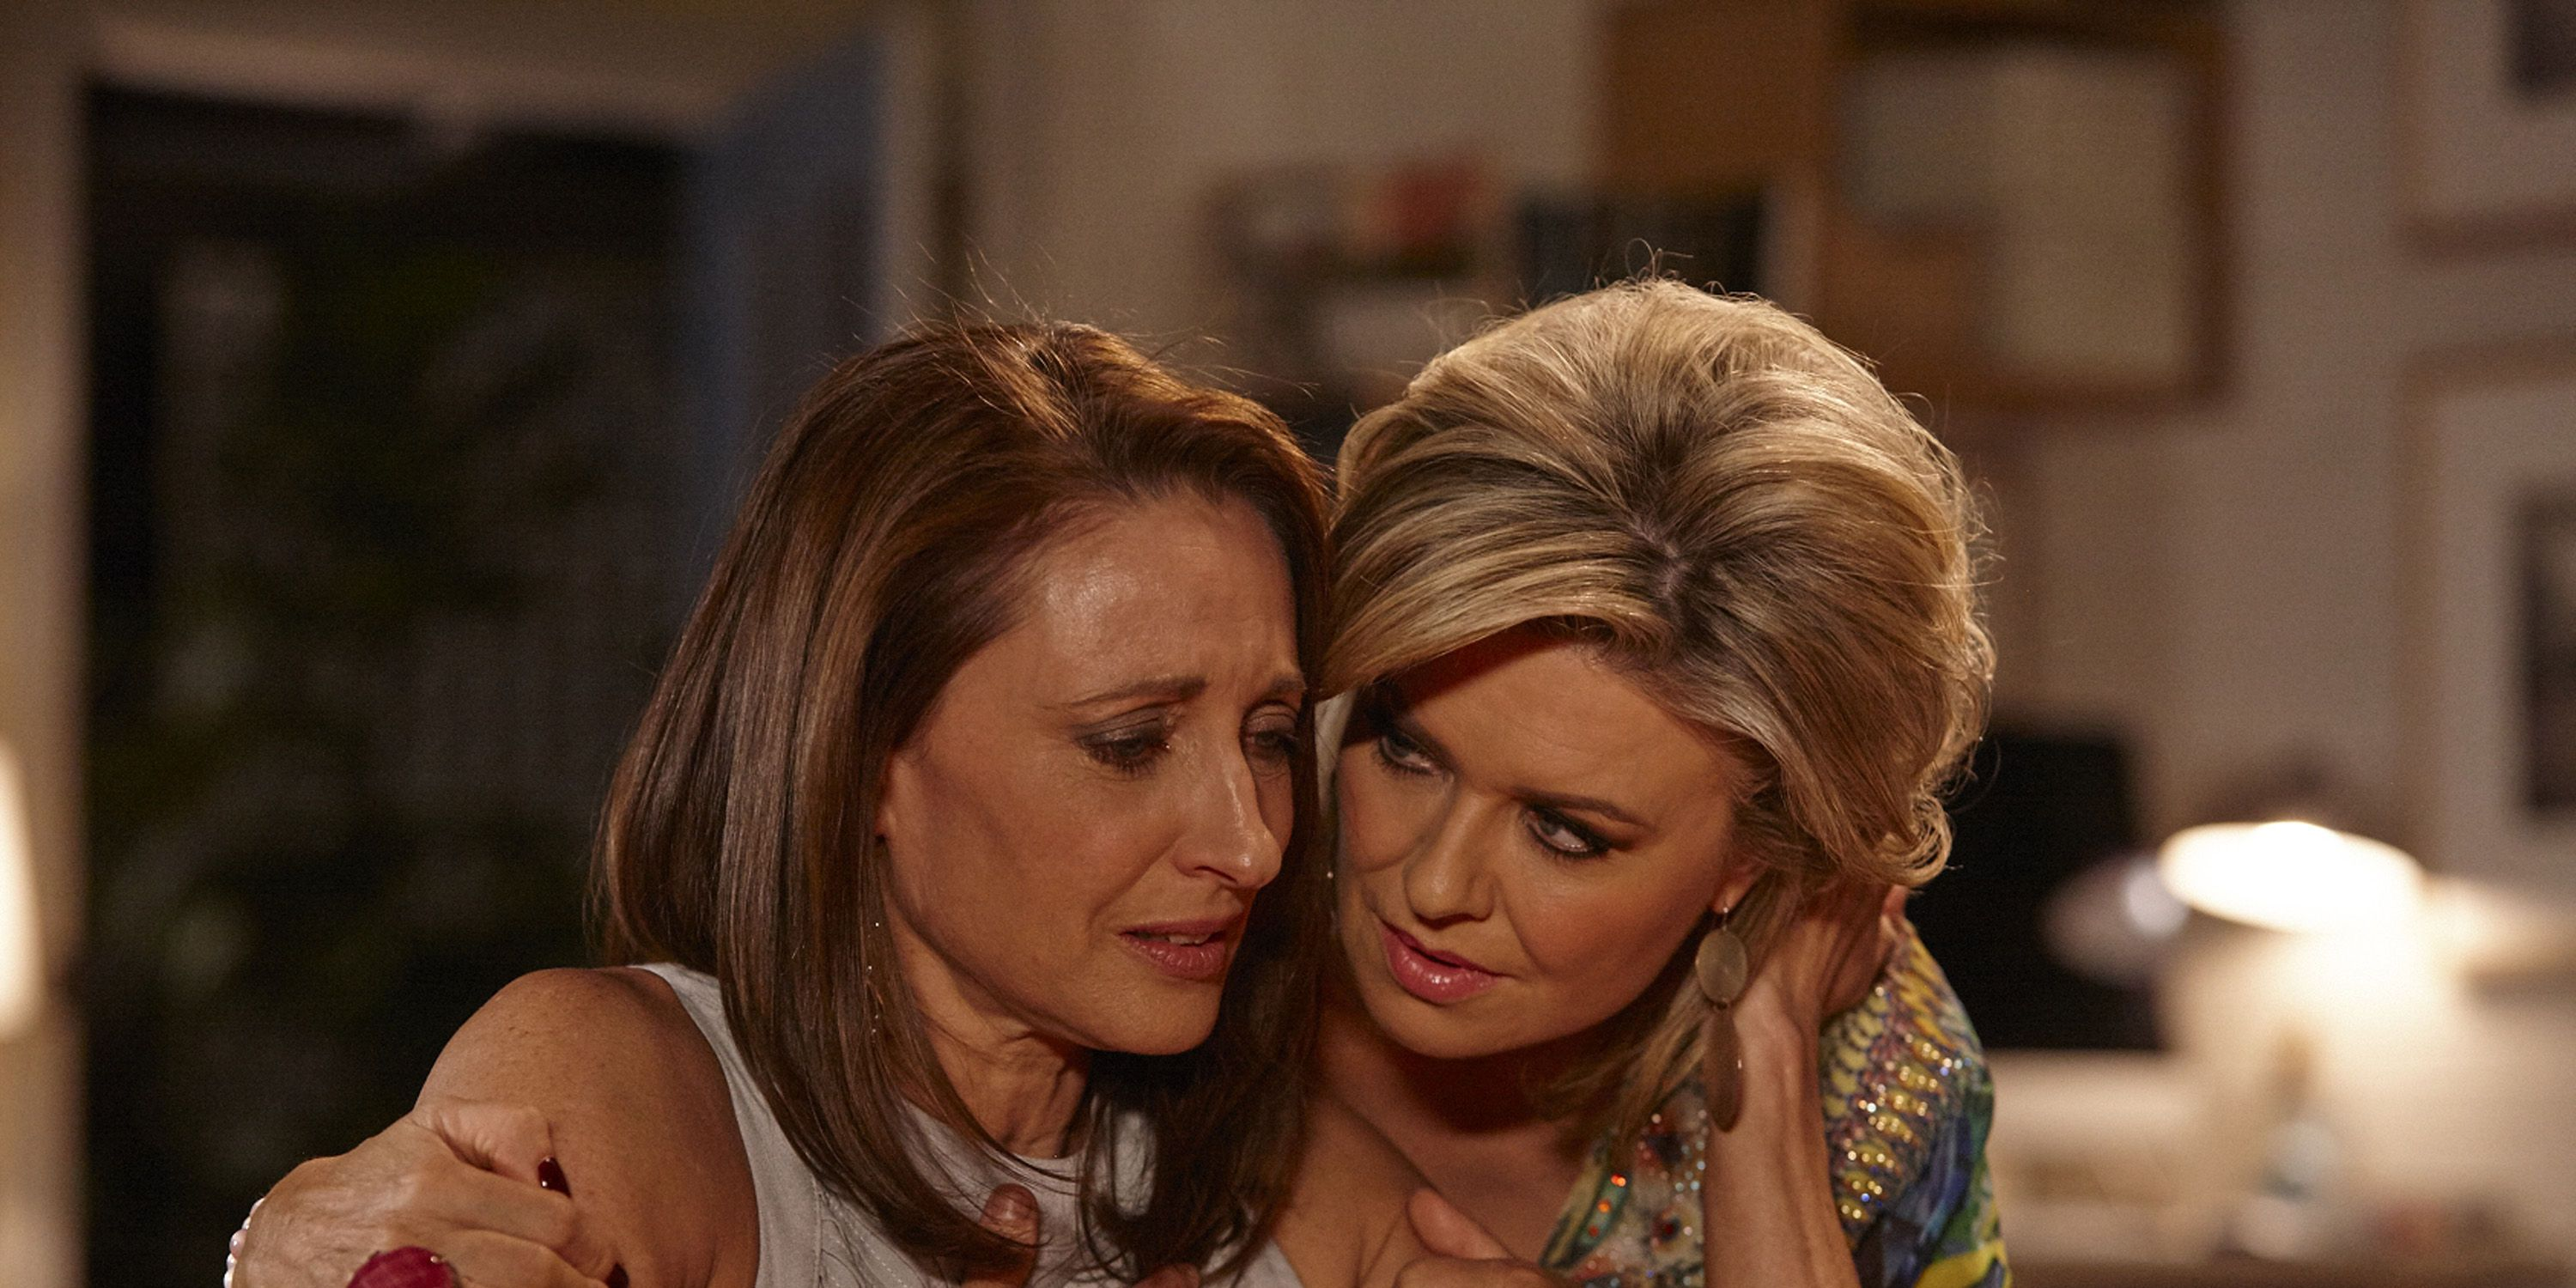 Roo Stewart breaks down in front of Marilyn Chambers in Home and Away